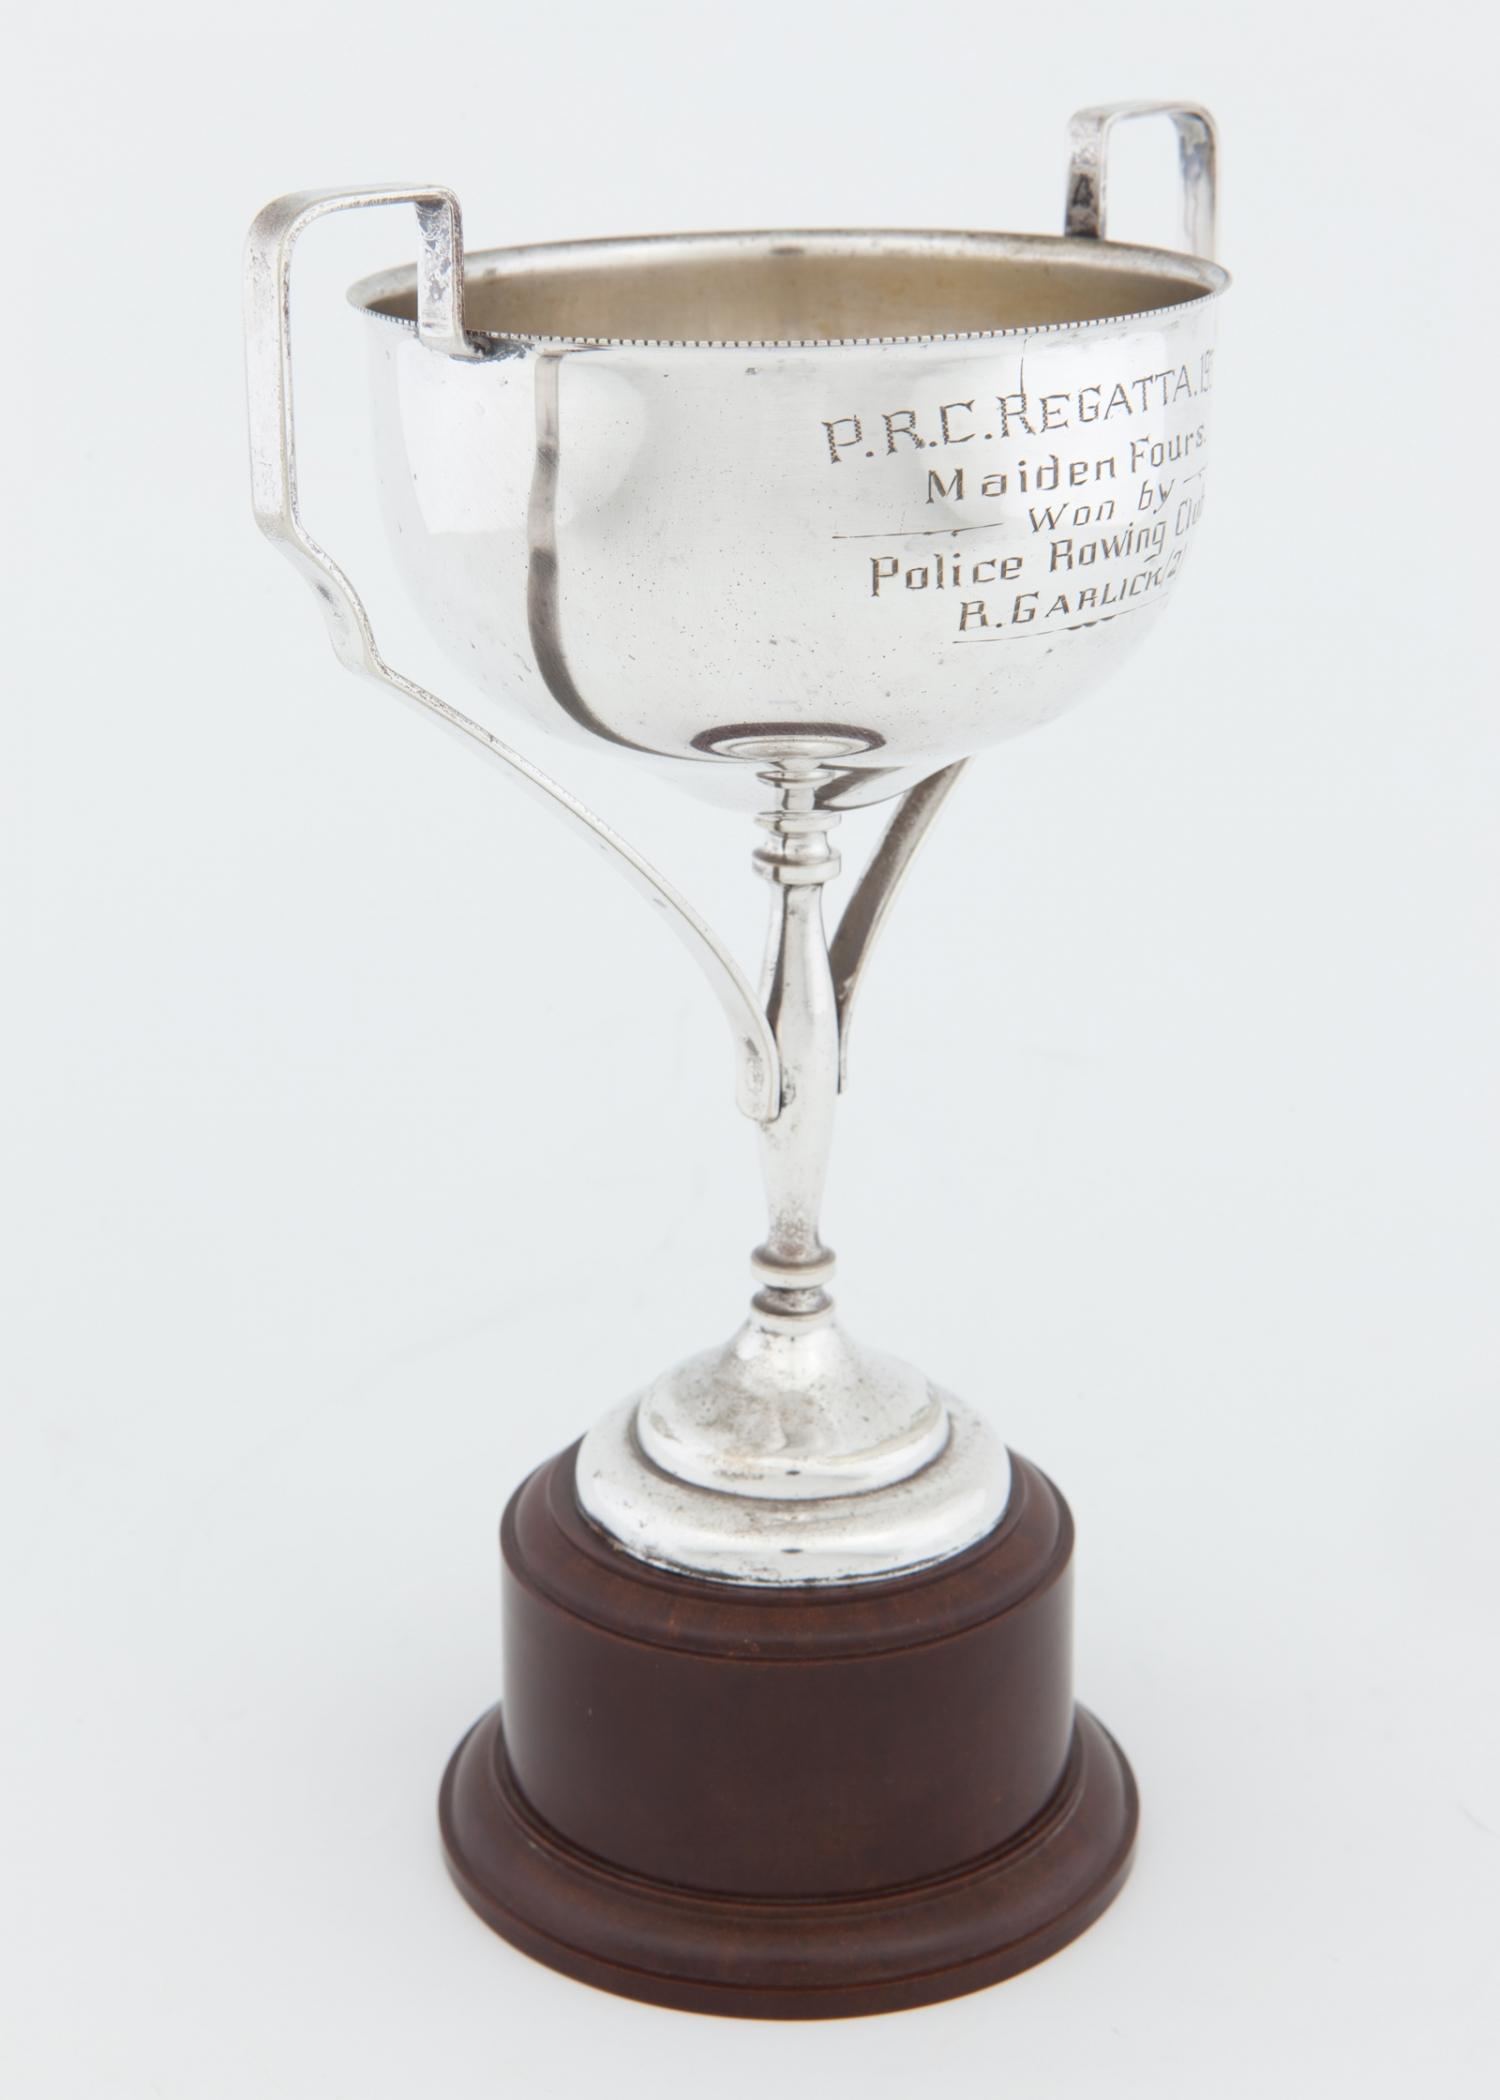 Trophy awarded to the Police Rowing Club for Maiden Fours, P.R.C. Regatta, 1935